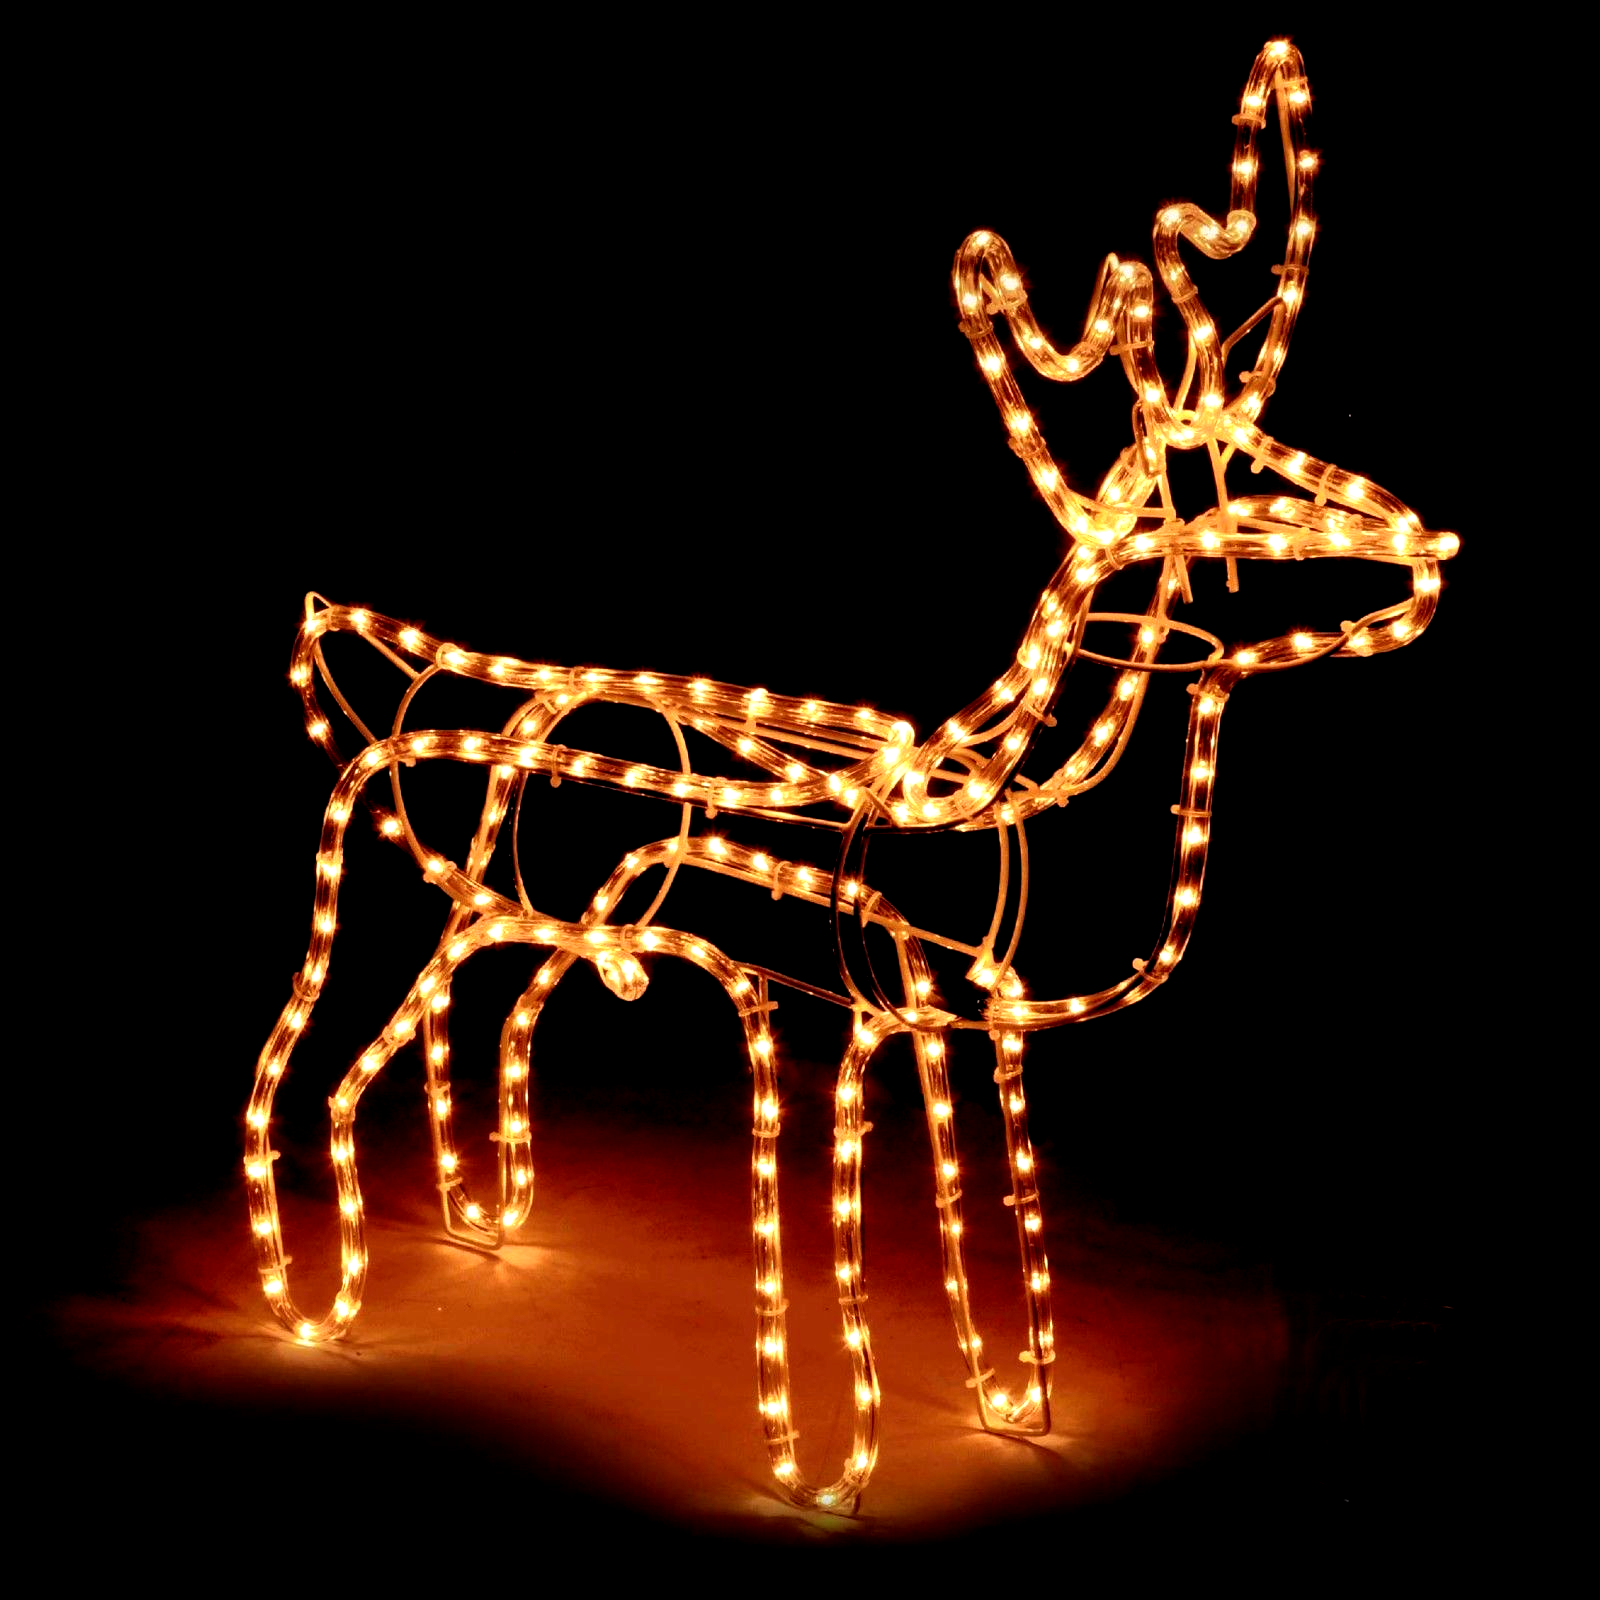 Large Christmas Reindeer Light Up Outdoor Garden Rope Decoration Silhouette Wed Christmas Decoration In 2020 Rope Decor Reindeer Lights Christmas Reindeer Lights